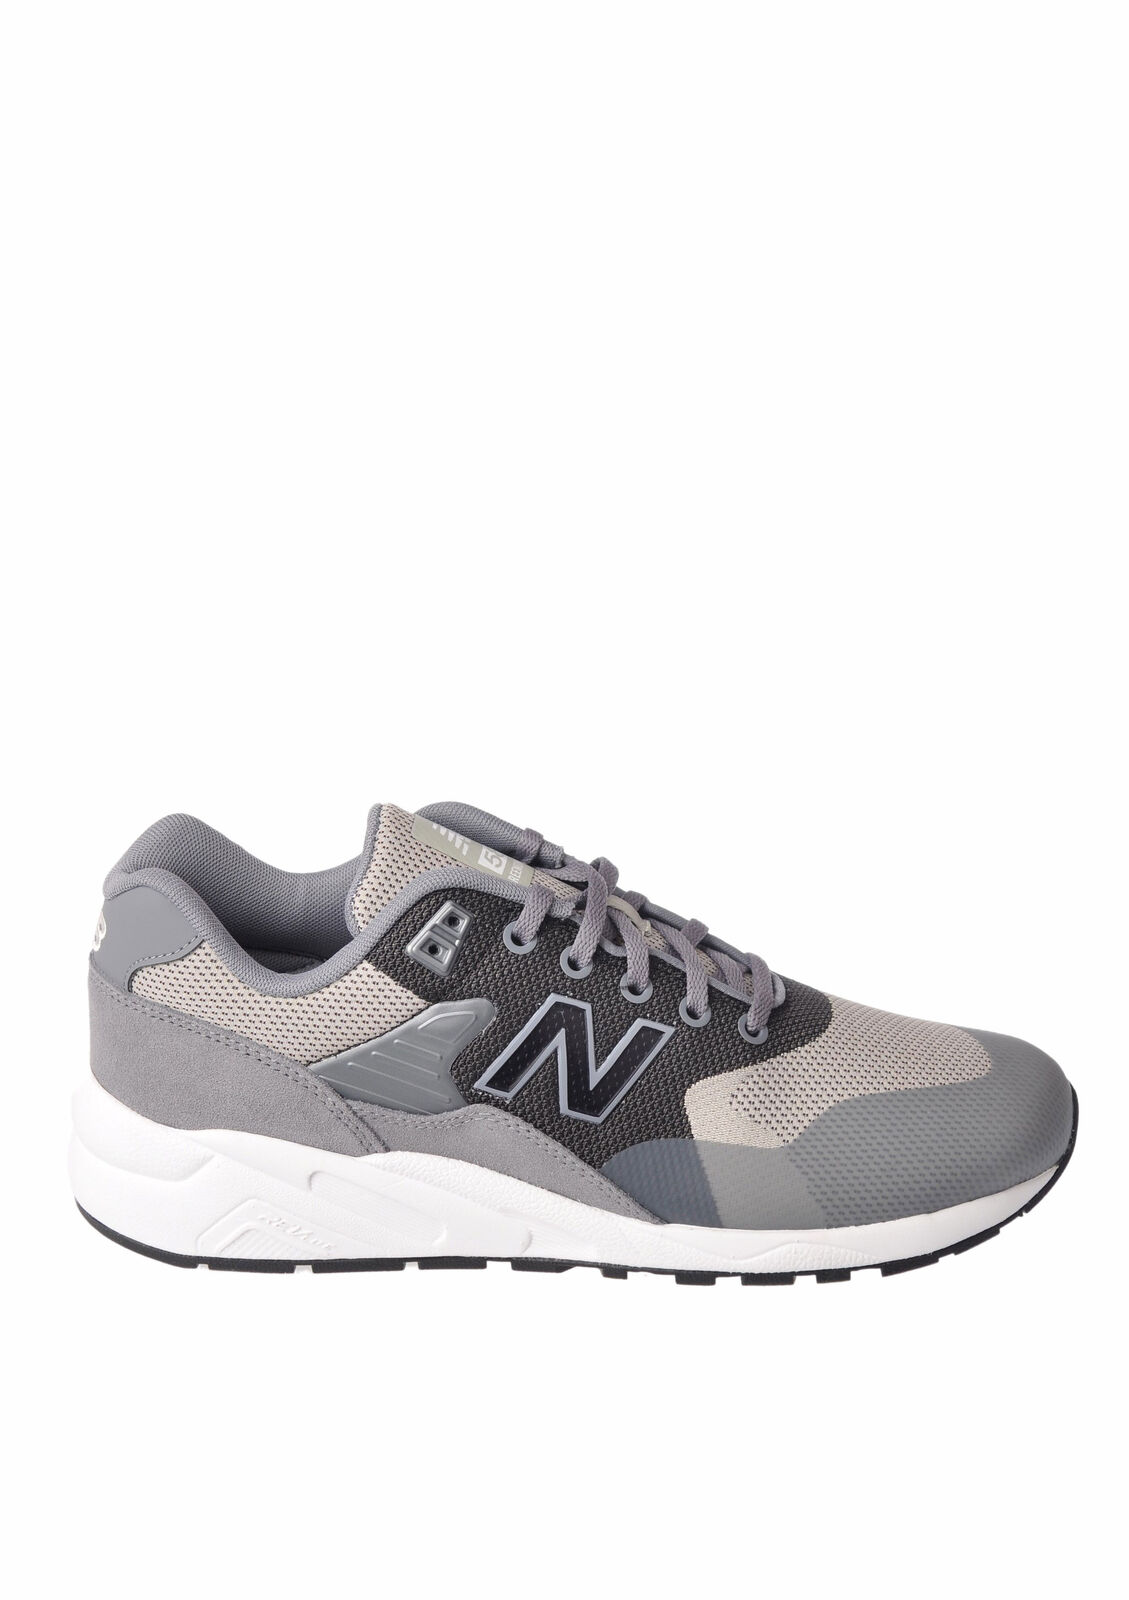 New Balance  -  Lace up shoes - Male - Grey - 2578527N173854